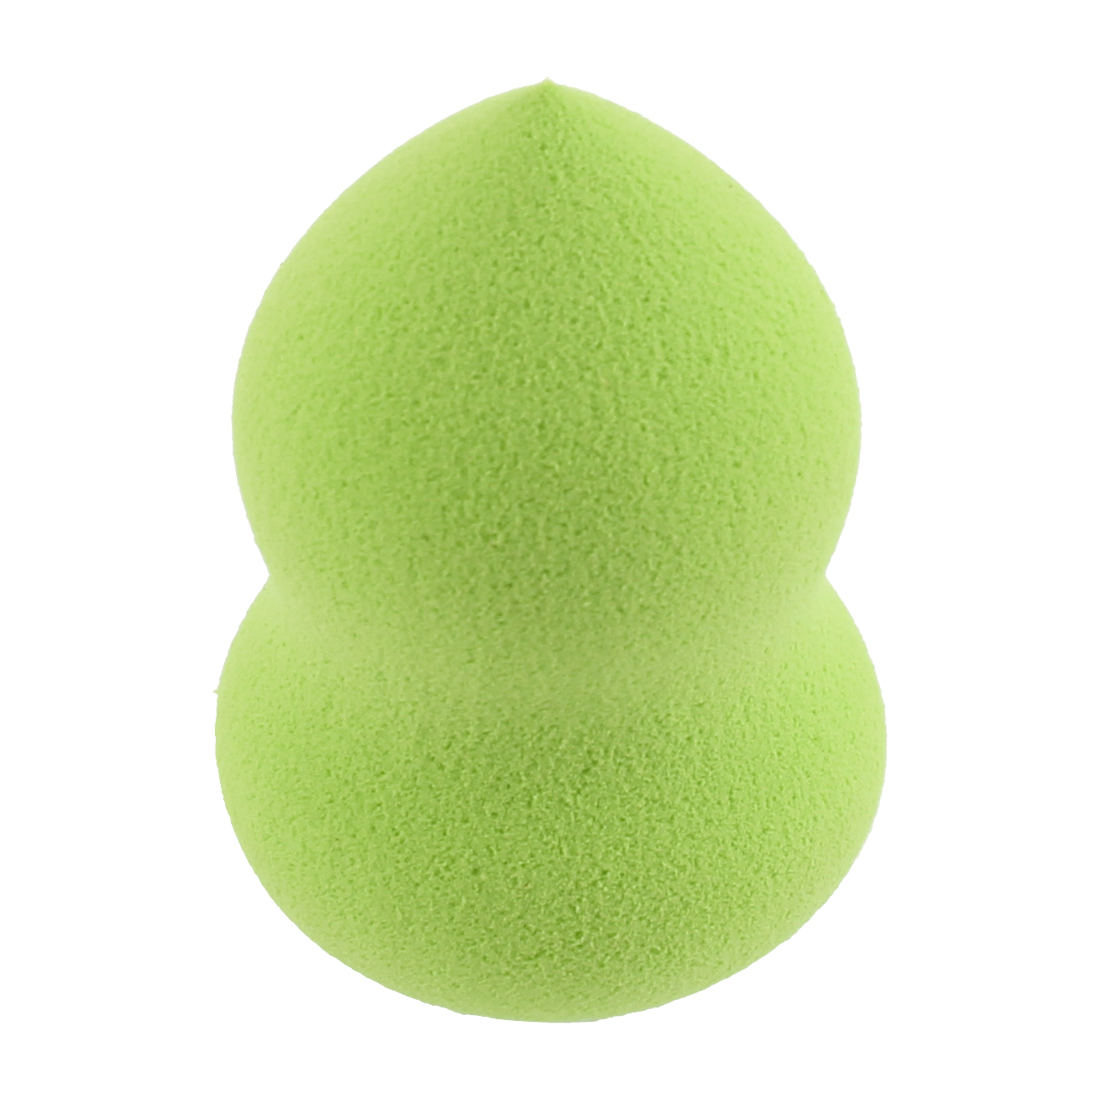 Gourd Shaped Cosmetic Makeup Facial Powder Sponge Puff Pad Fluorescent Yellow